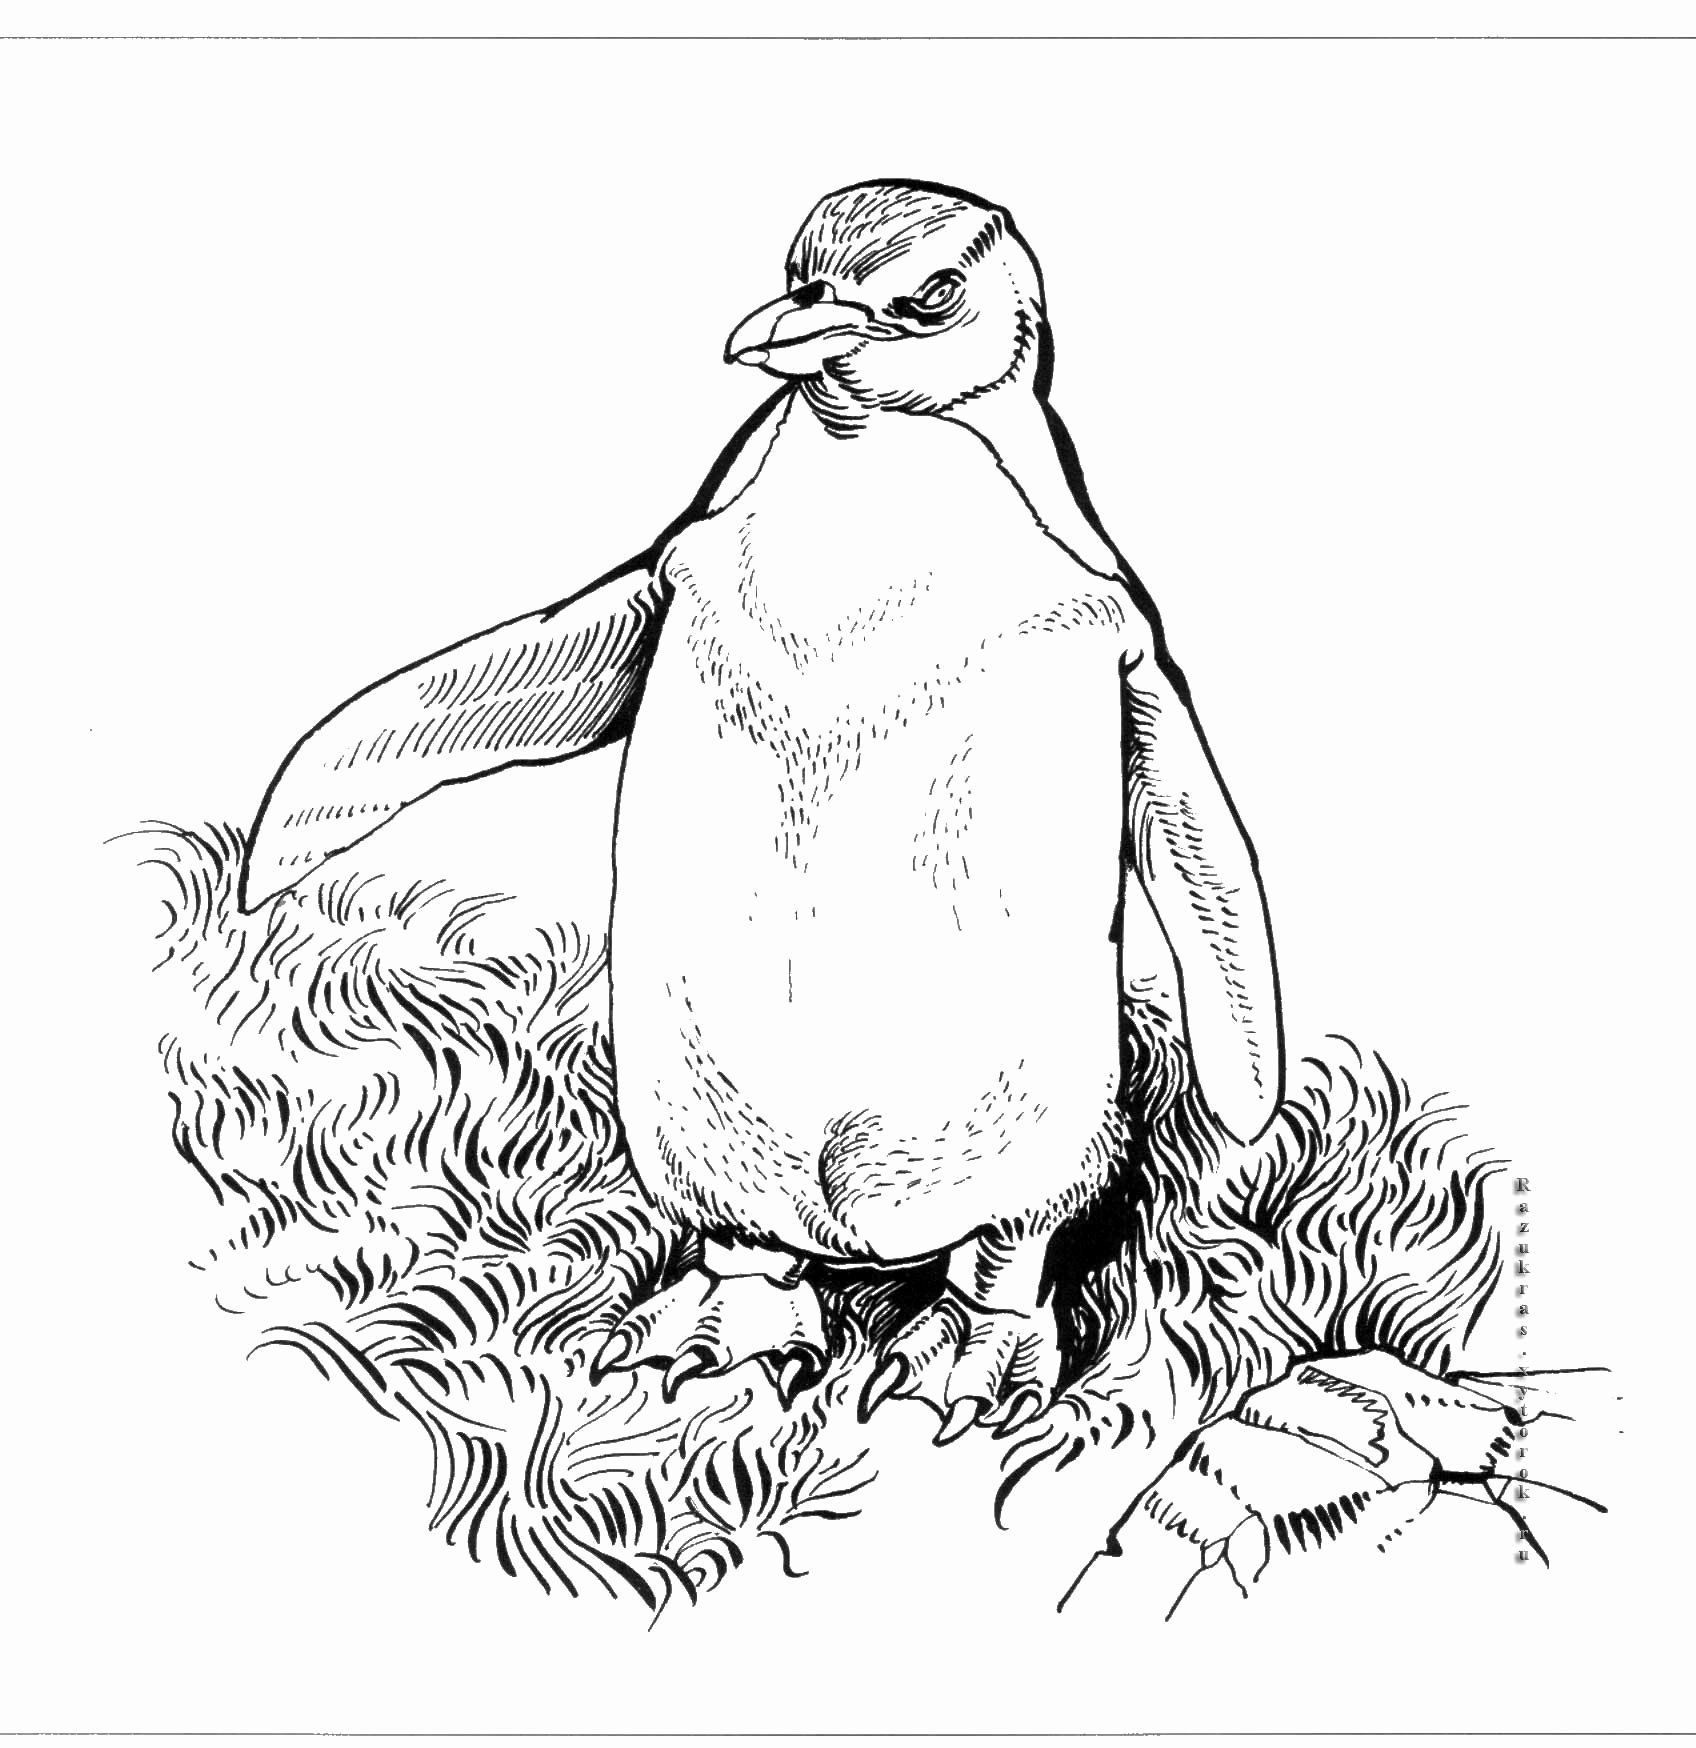 Adult Coloring Pages Penguin in 2020 Adult coloring